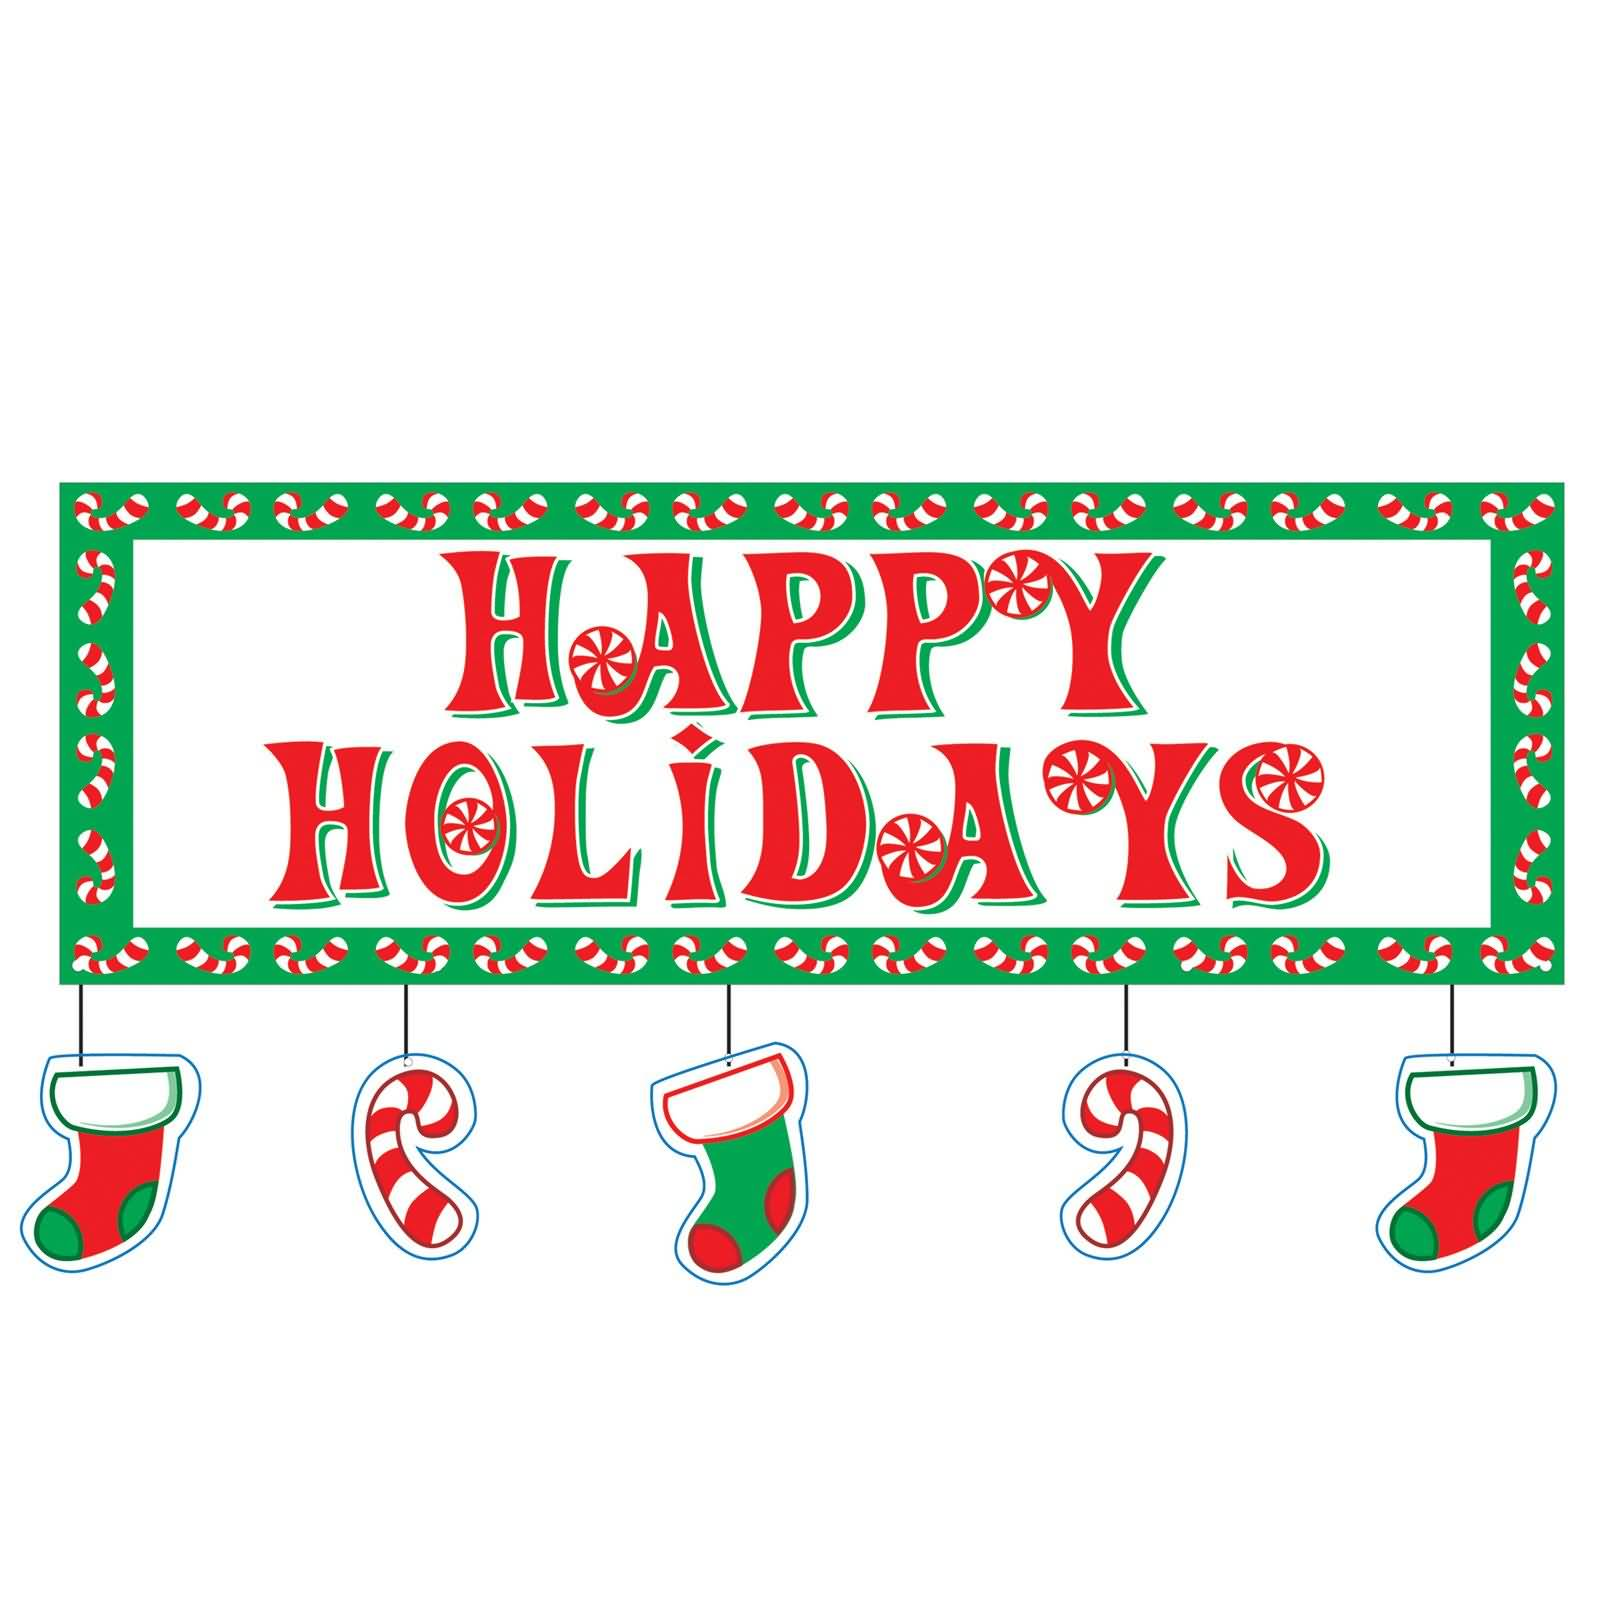 most beautiful happy. Holidays clipart holiday card